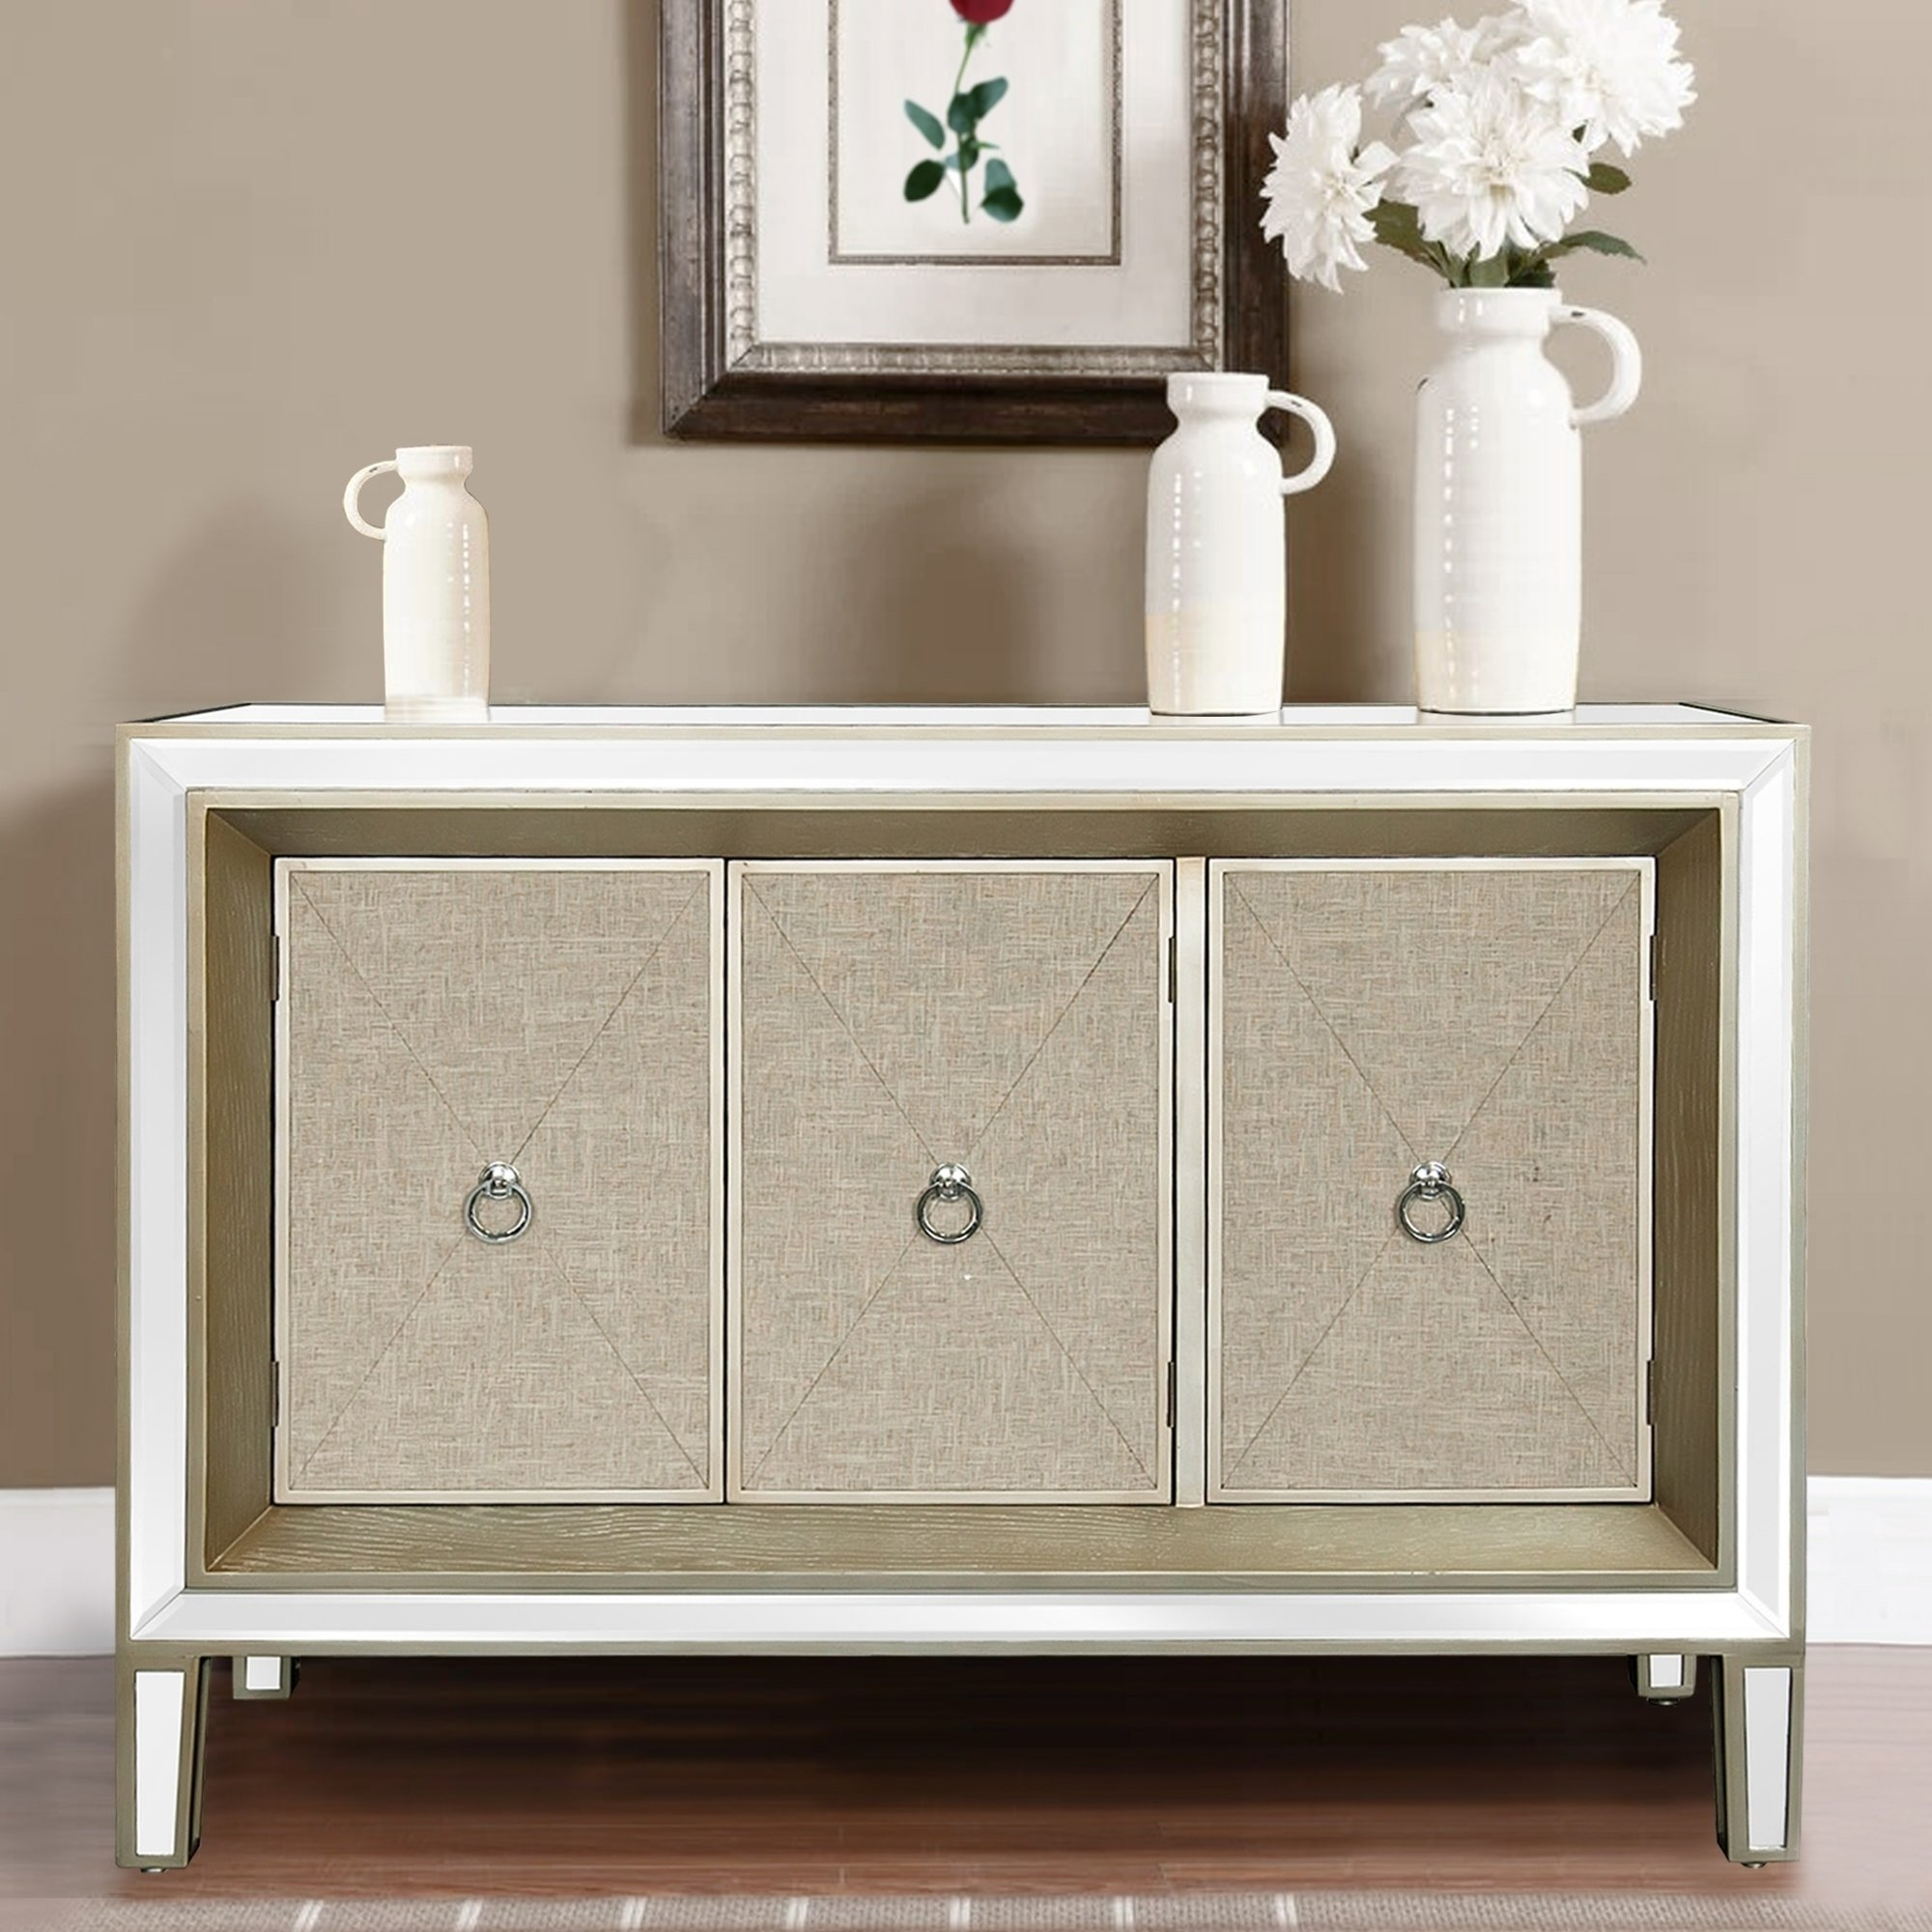 Buy Natural Finish, Entryway Table Online At Overstock | Our pertaining to Mandara 3-Drawer 2-Door Sideboards (Image 6 of 30)